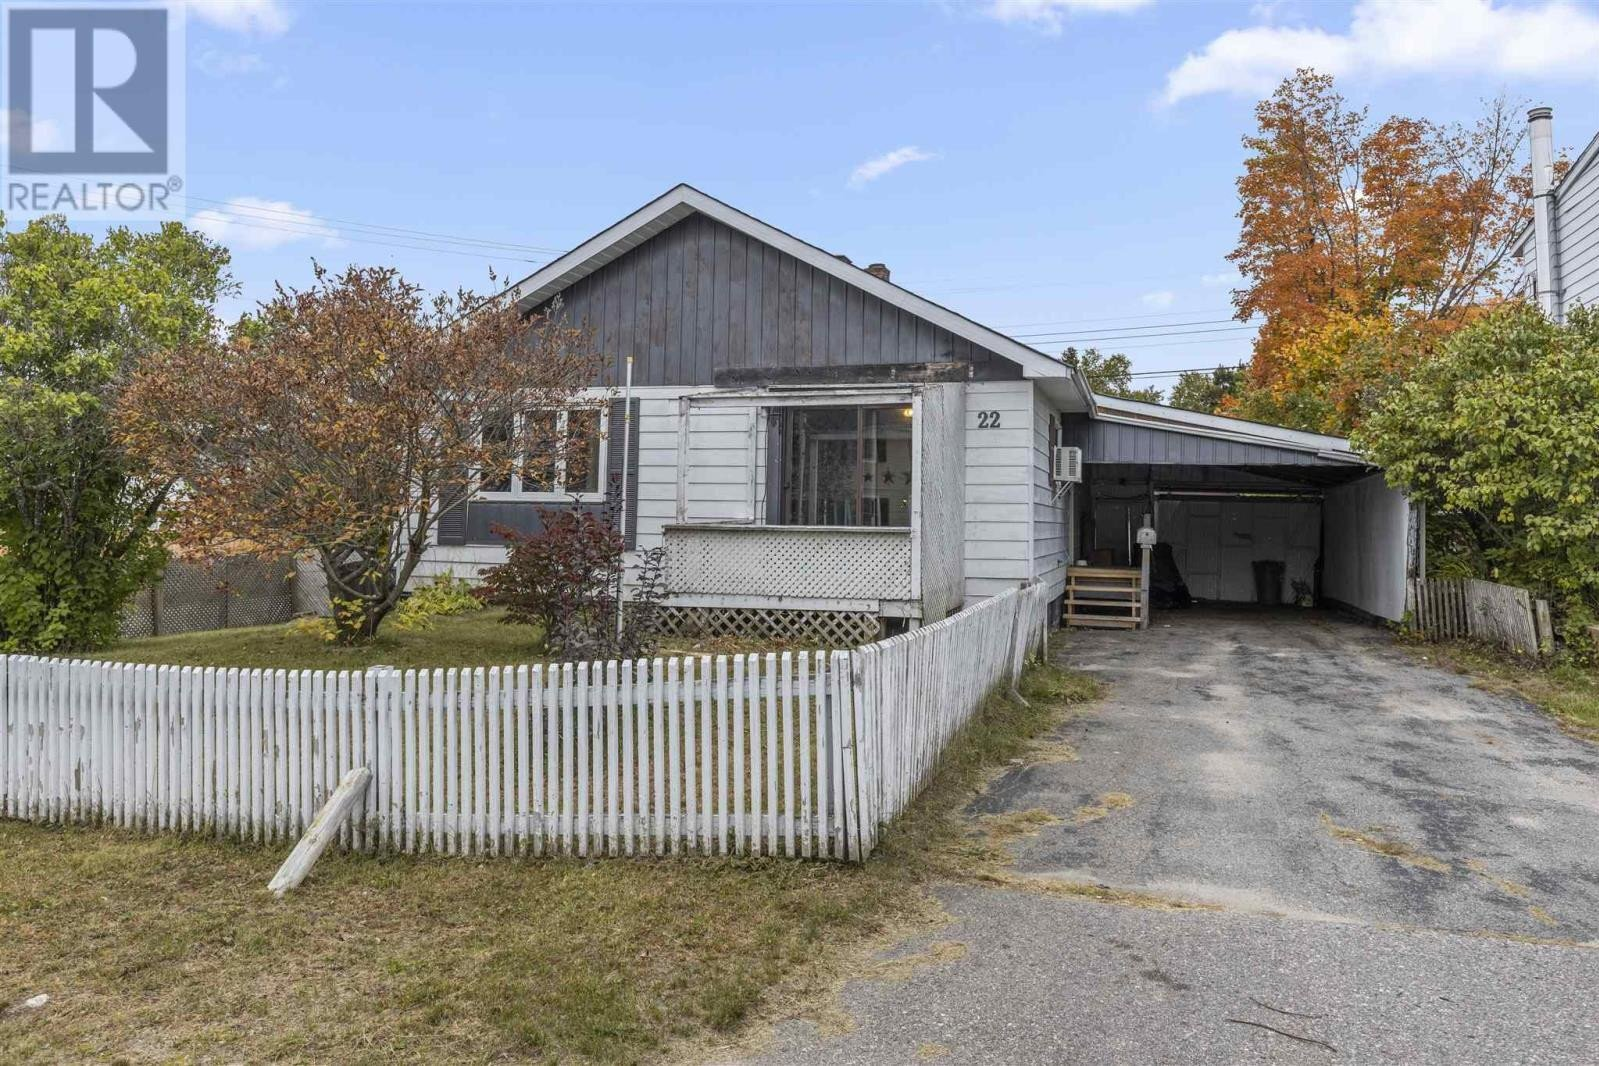 House for sale at 22 Hart Rd Elliot Lake Ontario - MLS: SM130238